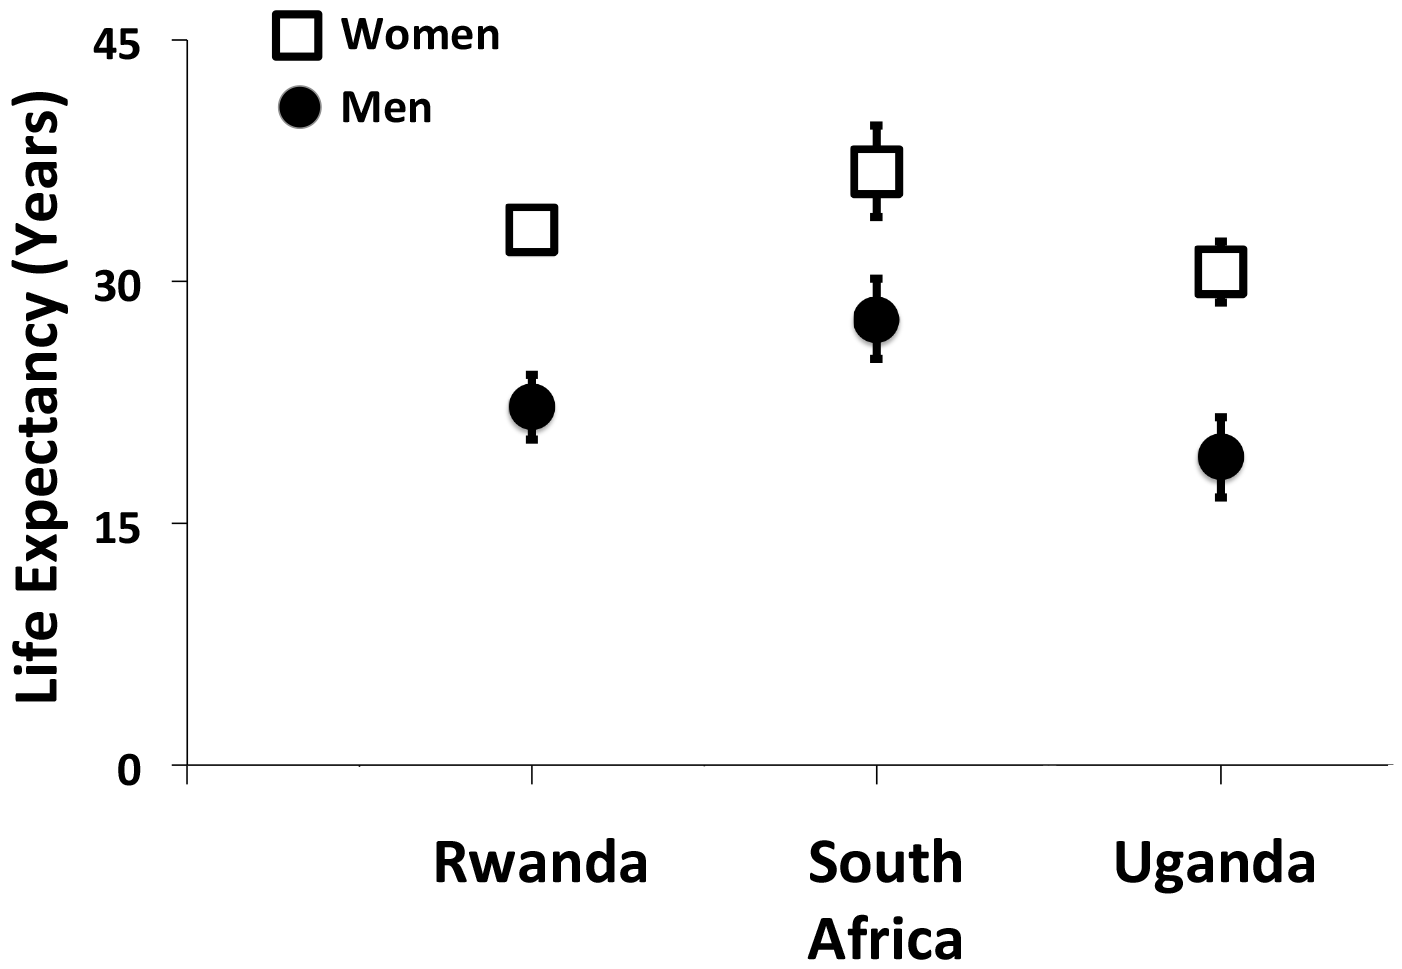 Gender gaps in life expectancy among men and women with HIV initiating antiretroviral therapy at 20 years of age.